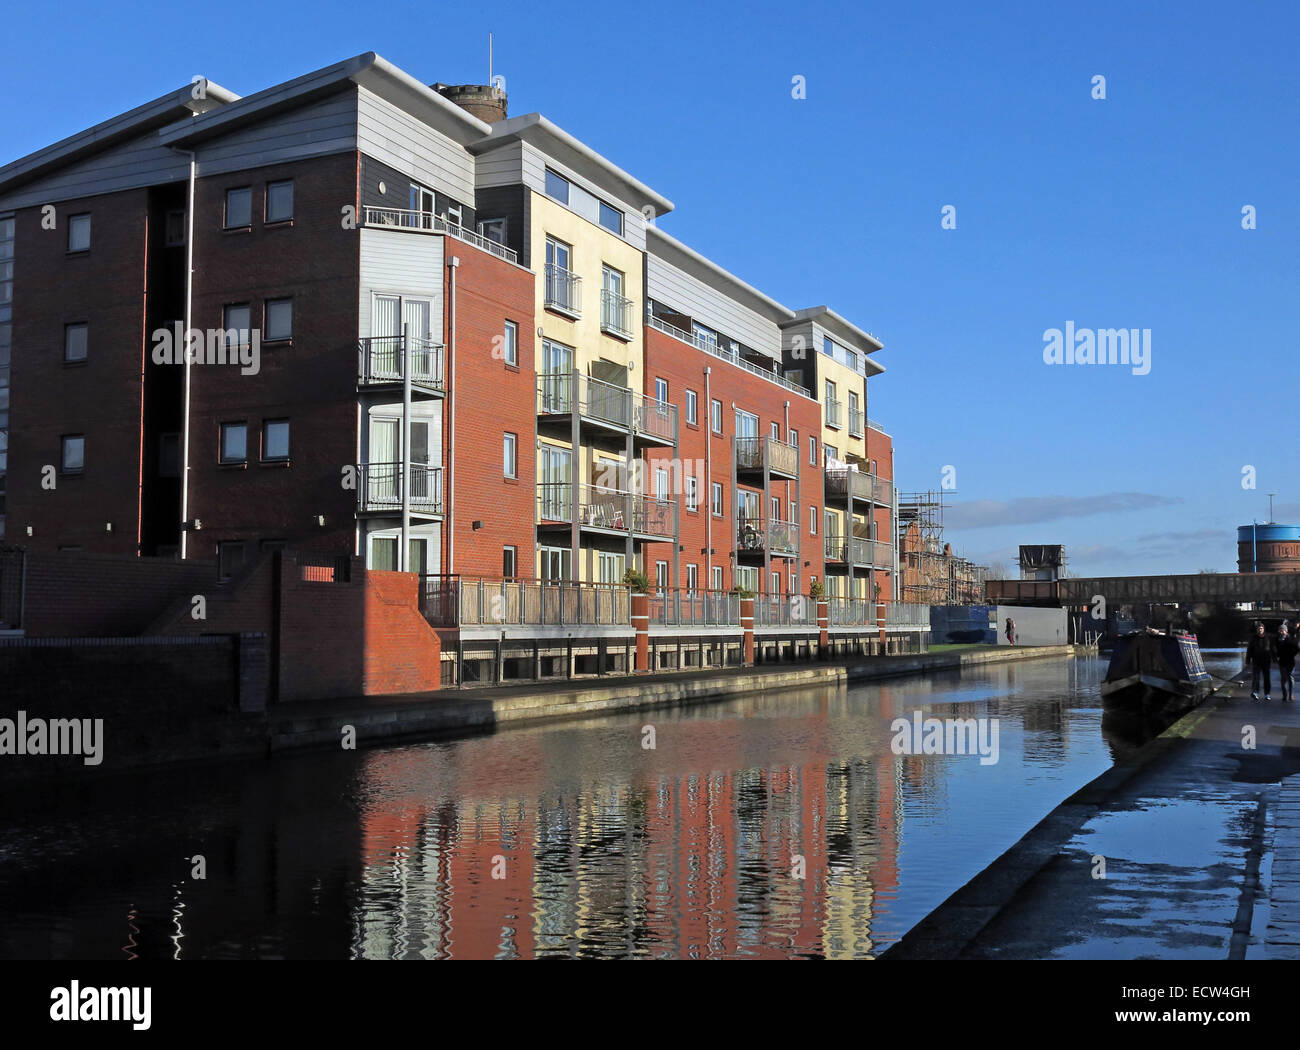 Laden Sie dieses Alamy Stockfoto Chester City Canal Waterfront, Cheshire, England, UK - ECW4GH